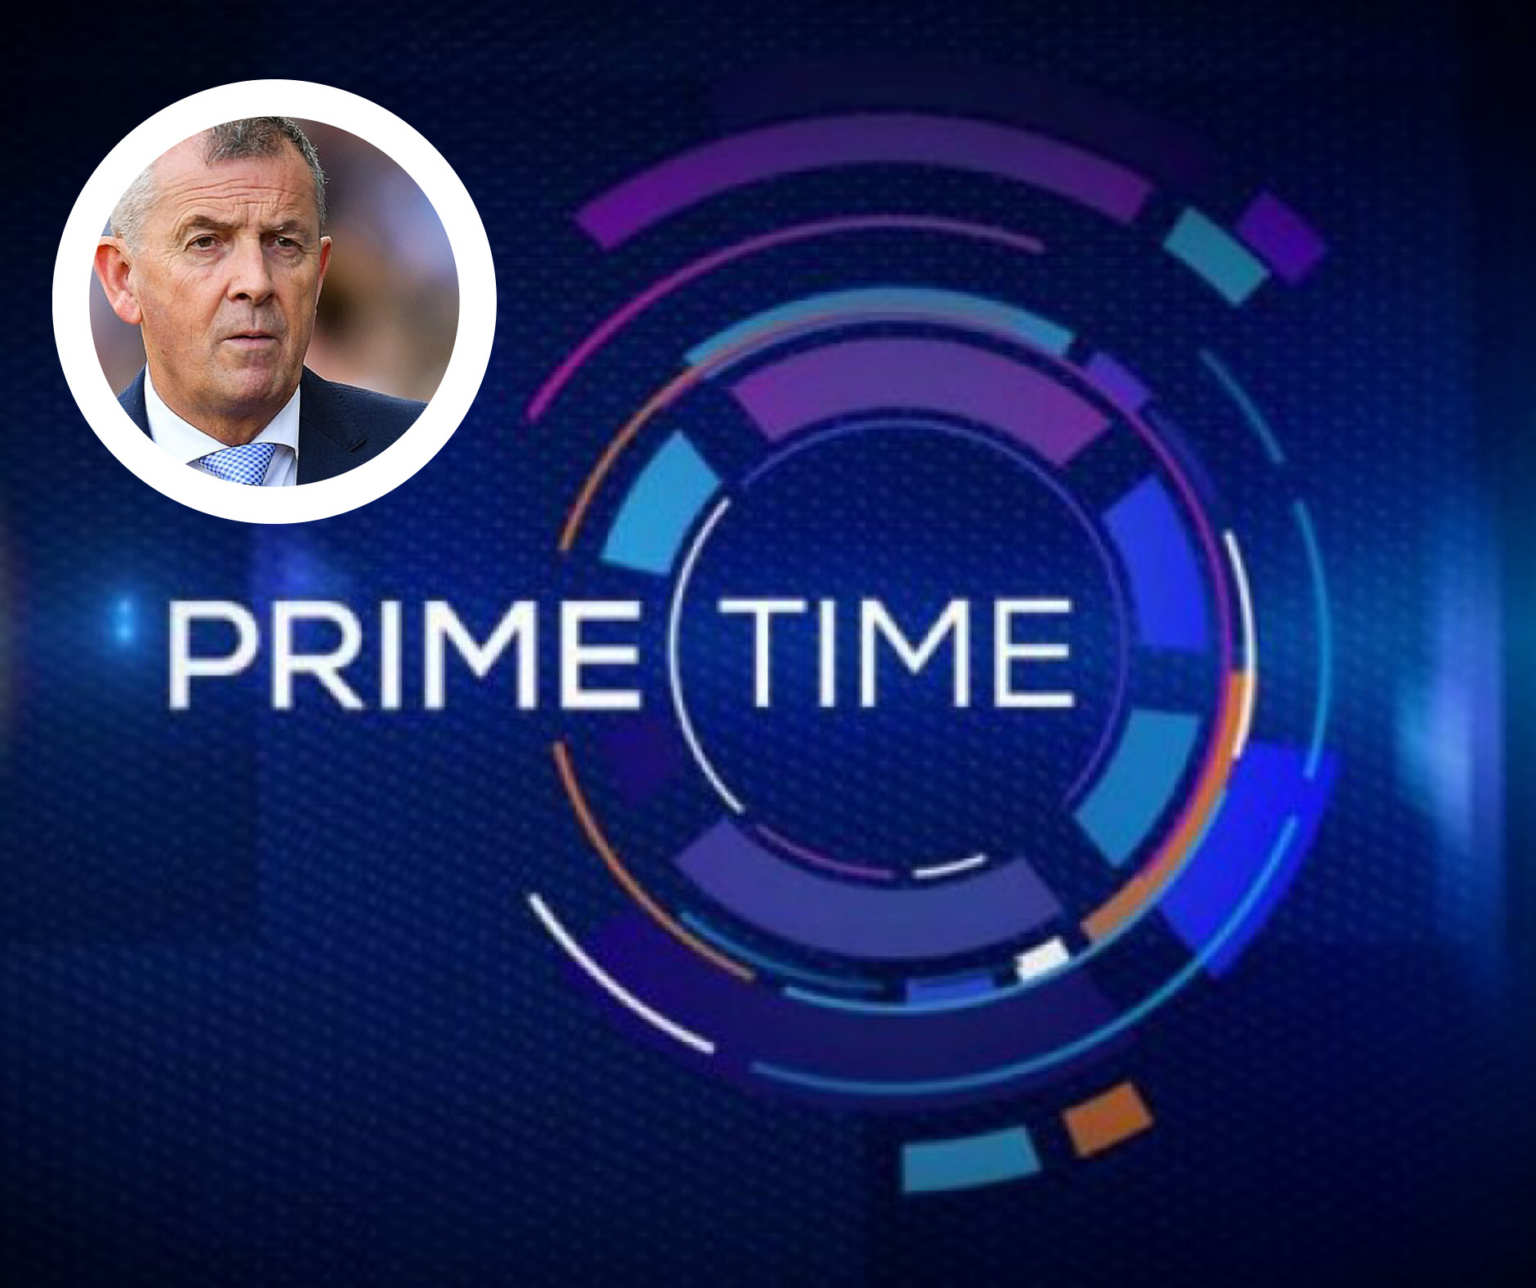 The Prime Time Programme Logo and insert Dublin Chief Executive John Costello who has questioned the Standards adopted by the RTÉ programme